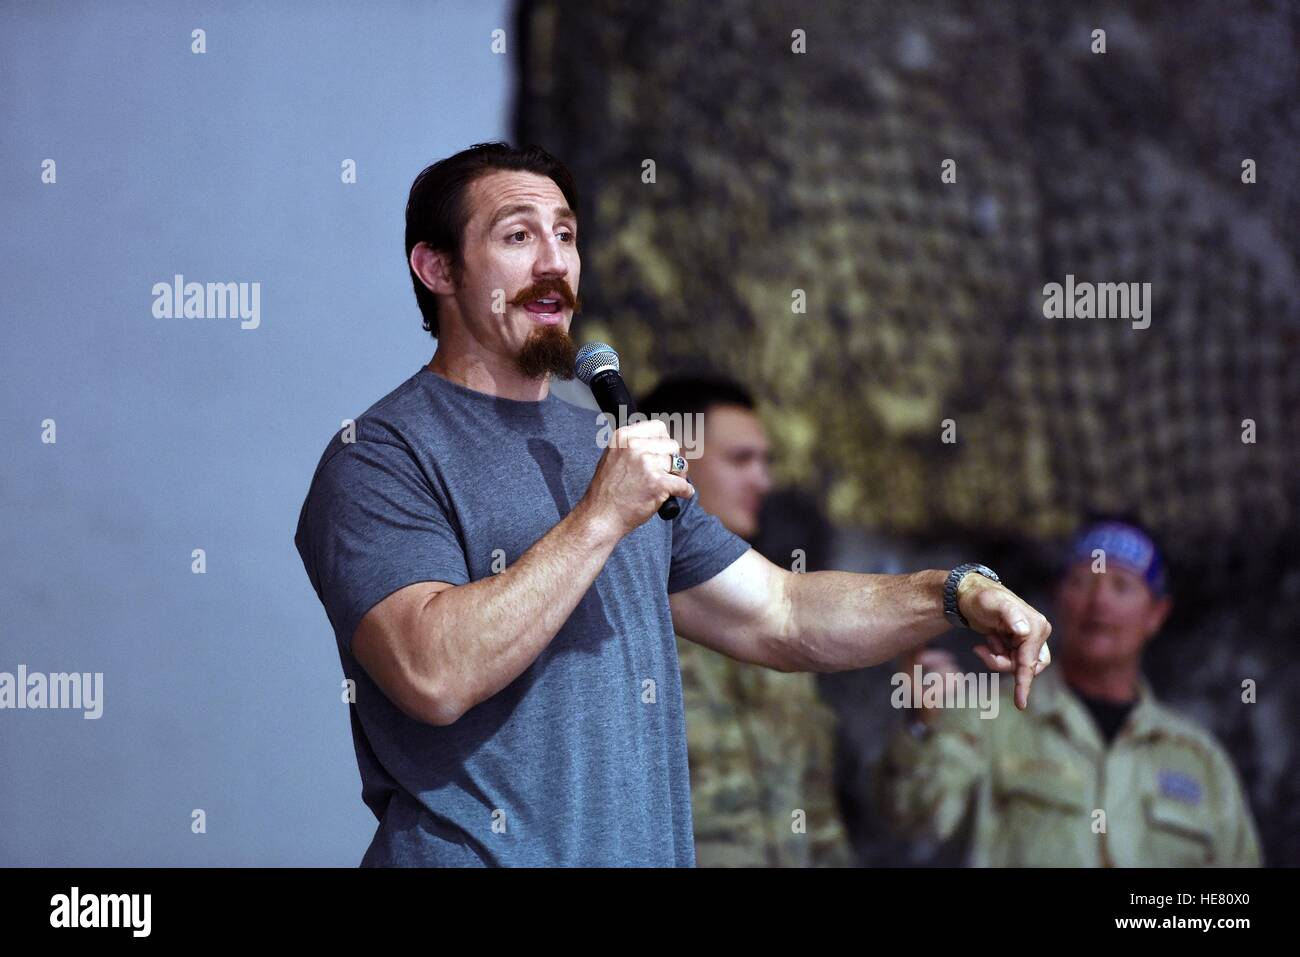 UFC fighter Tim Kennedy performs at the National Guard USO Tour May 19, 2016 in Afghanistan. - Stock Image